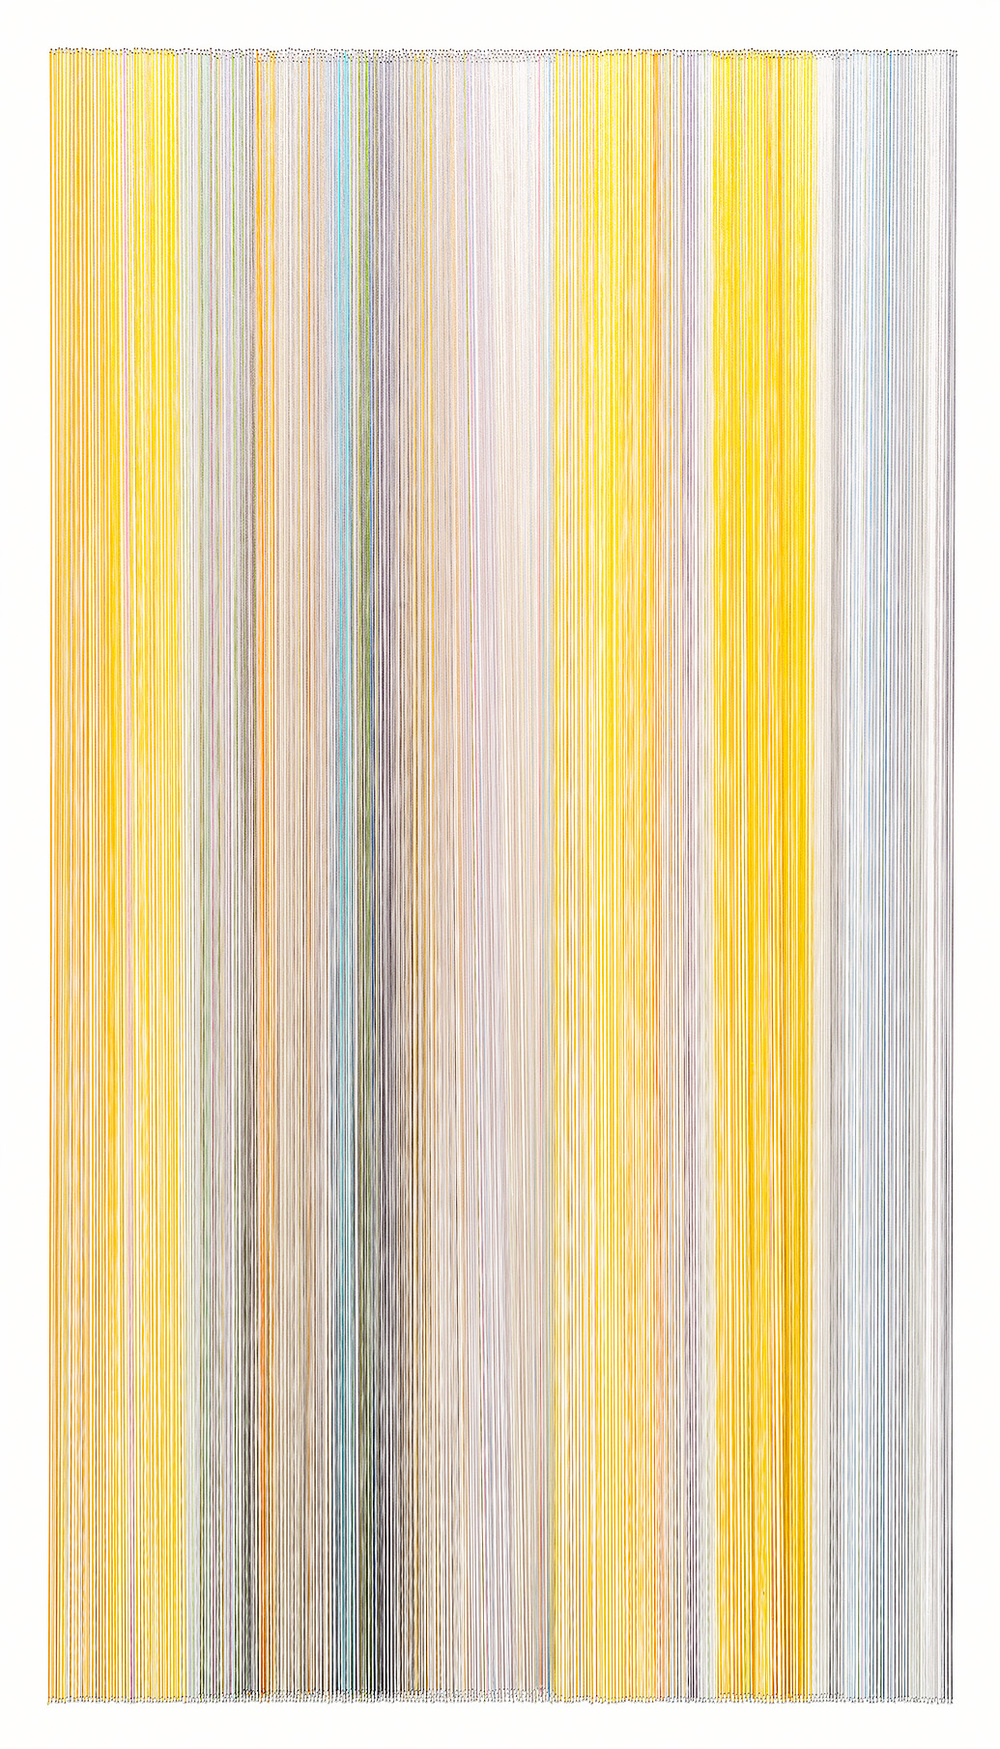 thread drawing 33  2014 rayon thread 42 by 24 inches